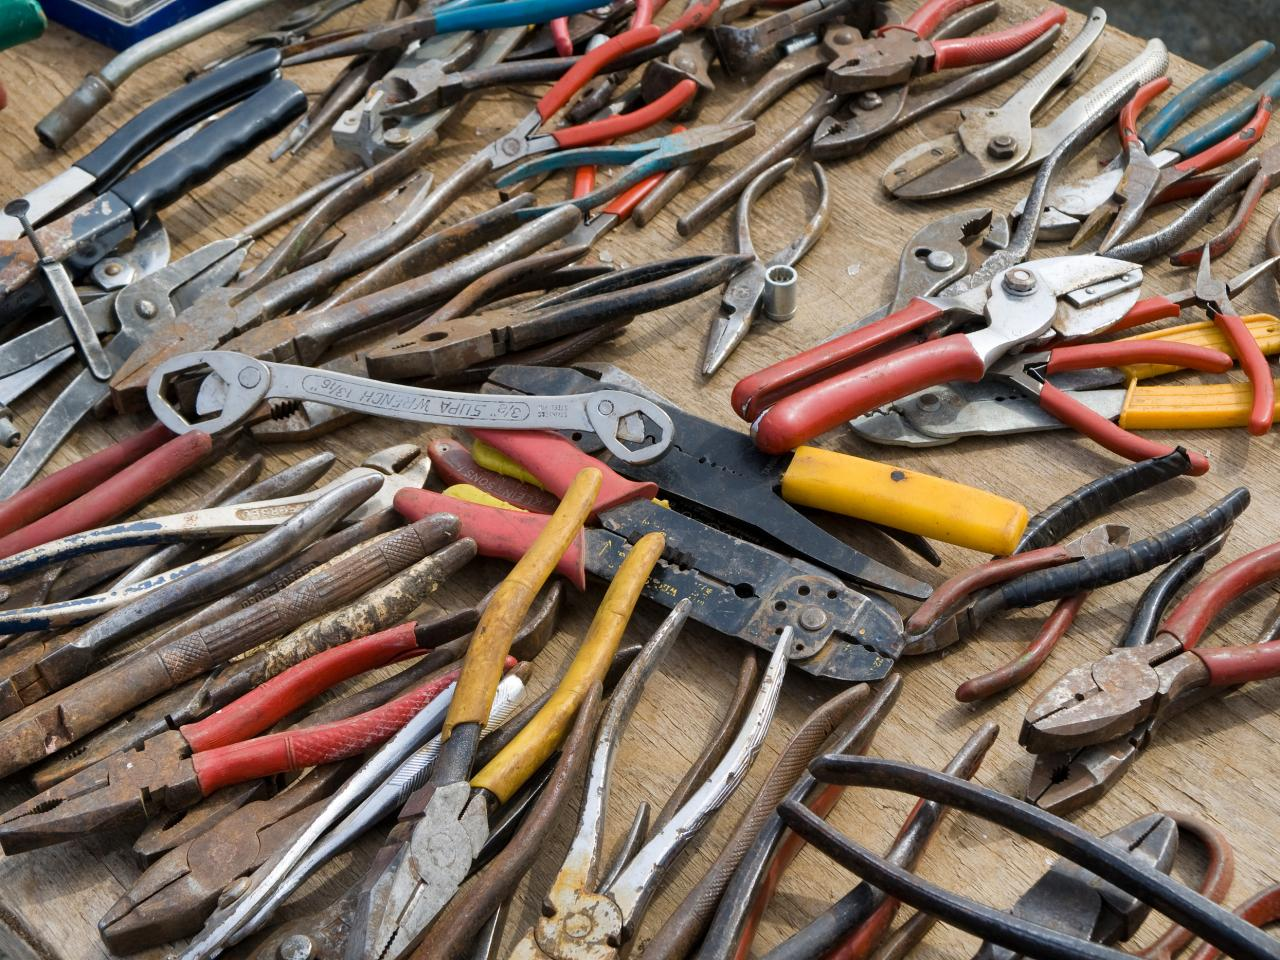 Buying guide for secondhand tools diy for Second hand garden tools